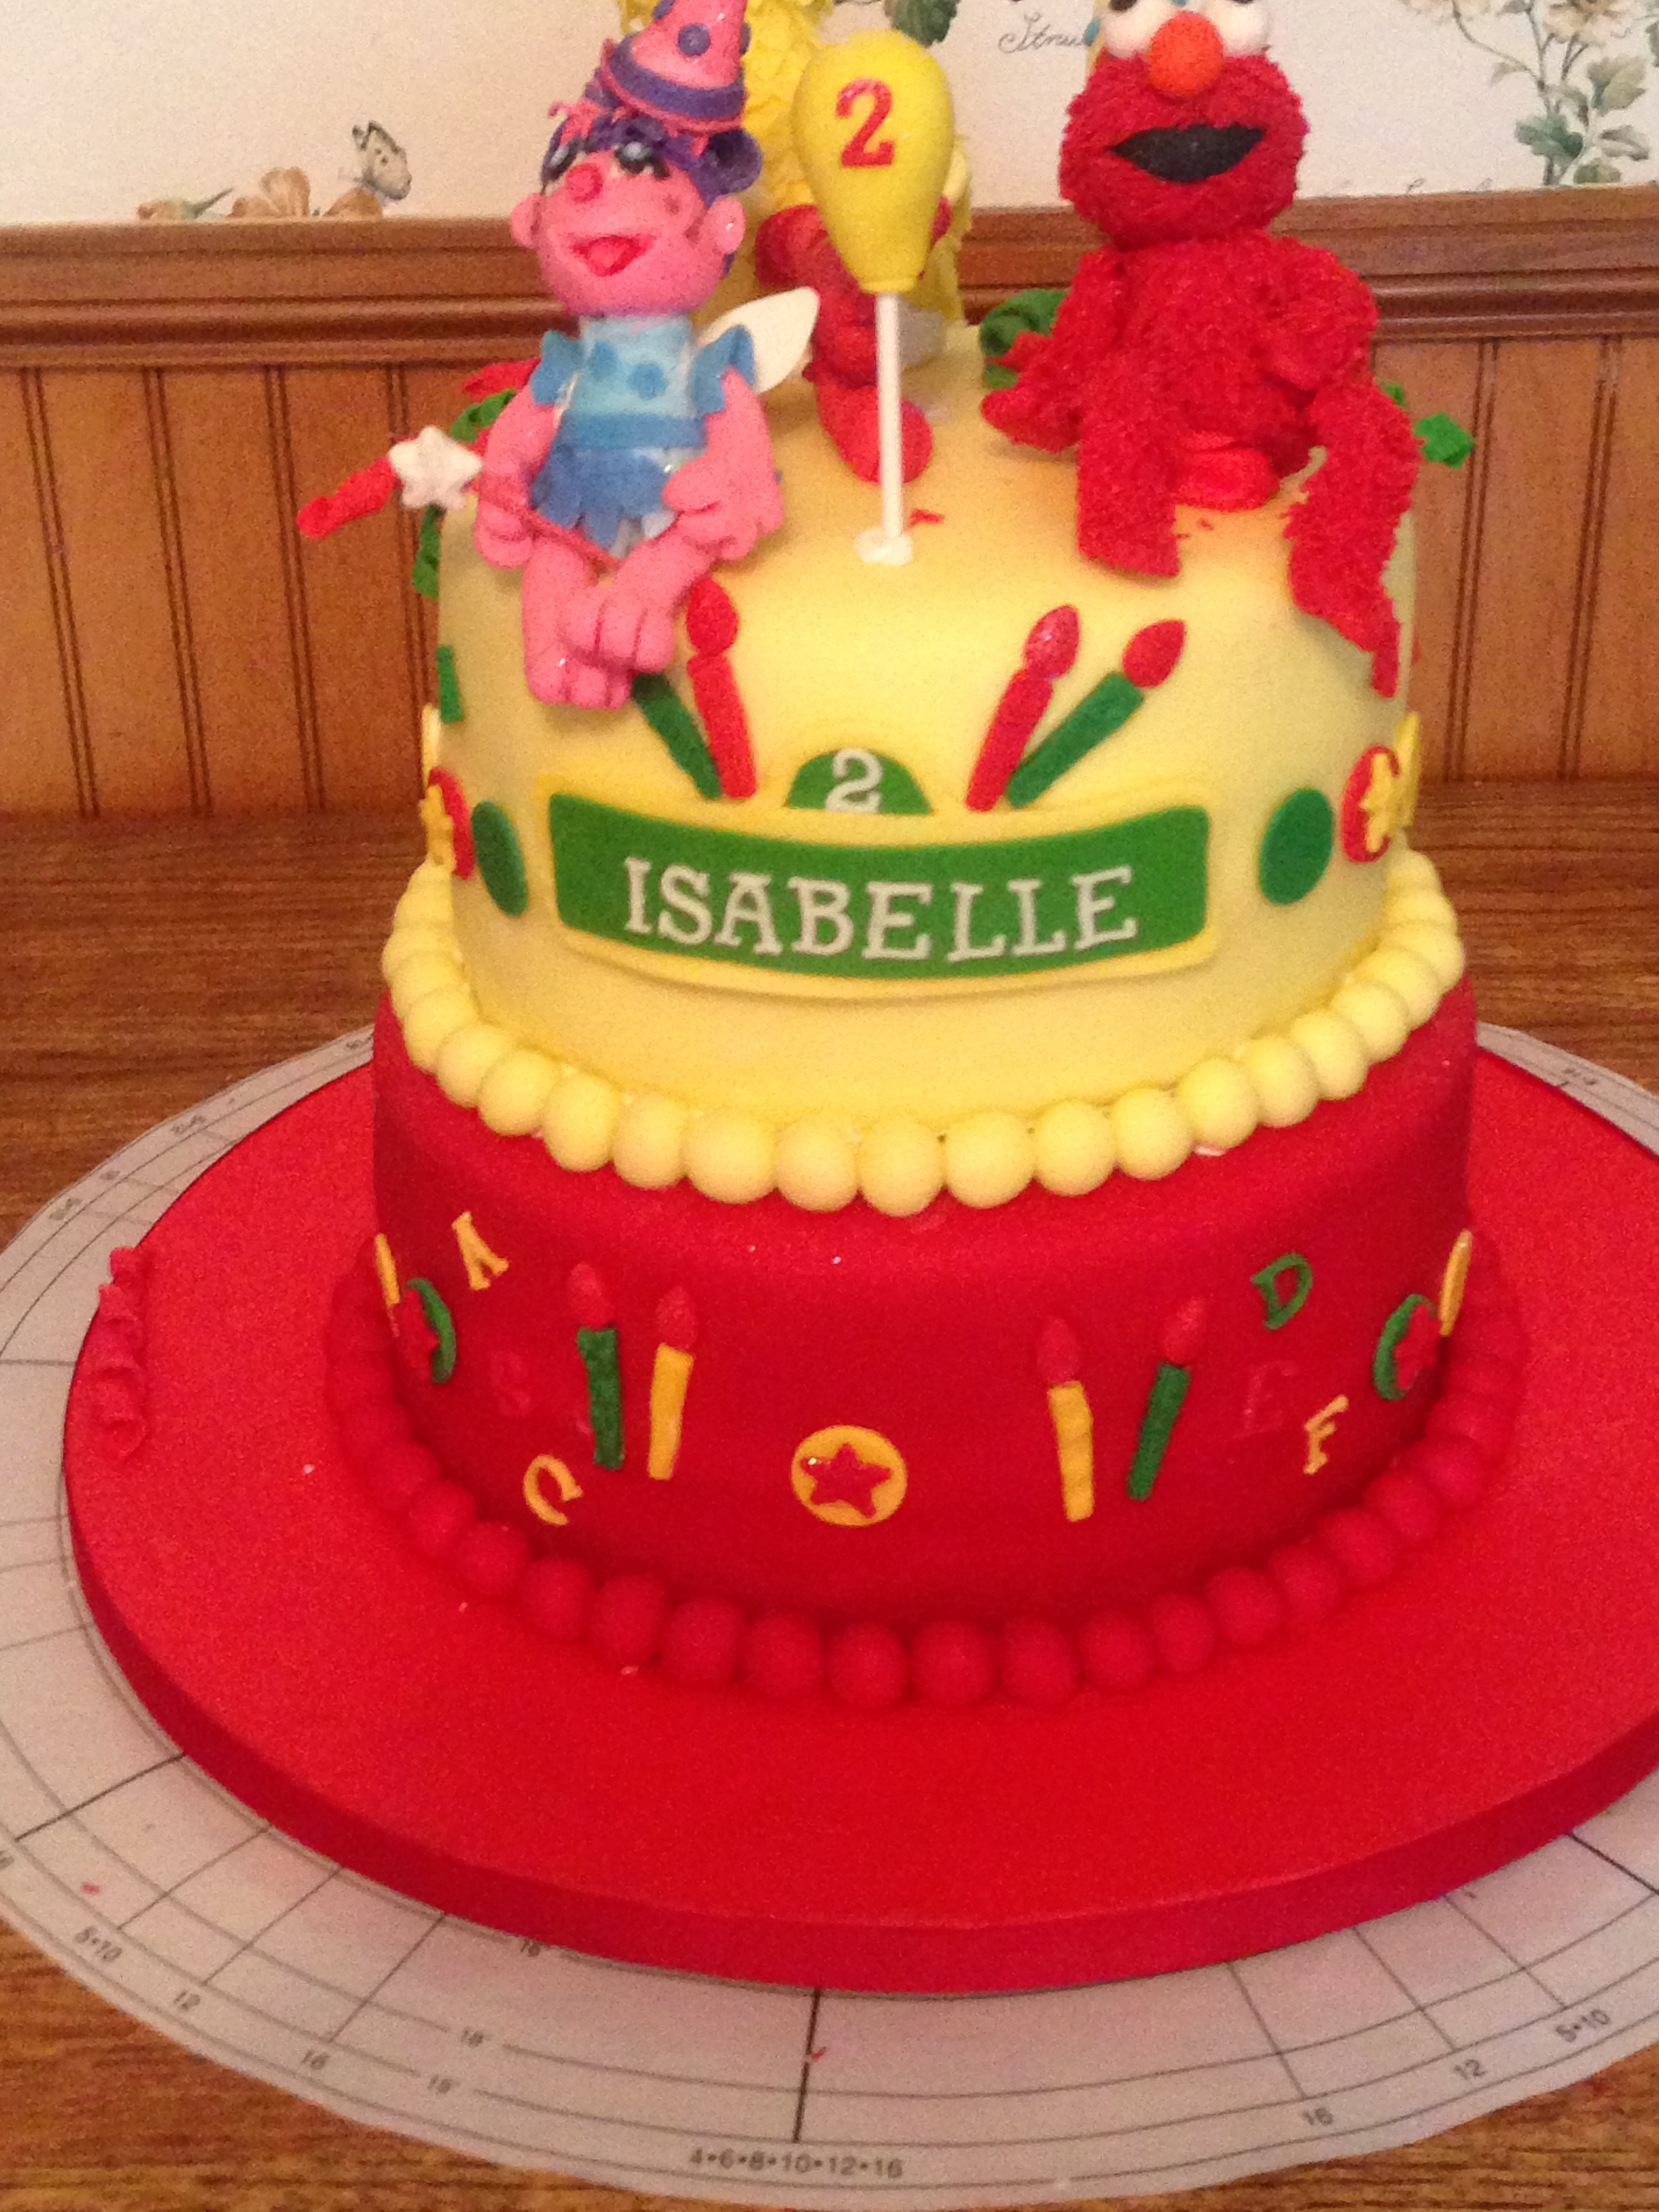 Sesame Street Themed Birthday Cake Featuring Elmo Abby Cadabby And Big Bird All Fondant With Vanilla Buttercream Atop Of A Butter Yellow